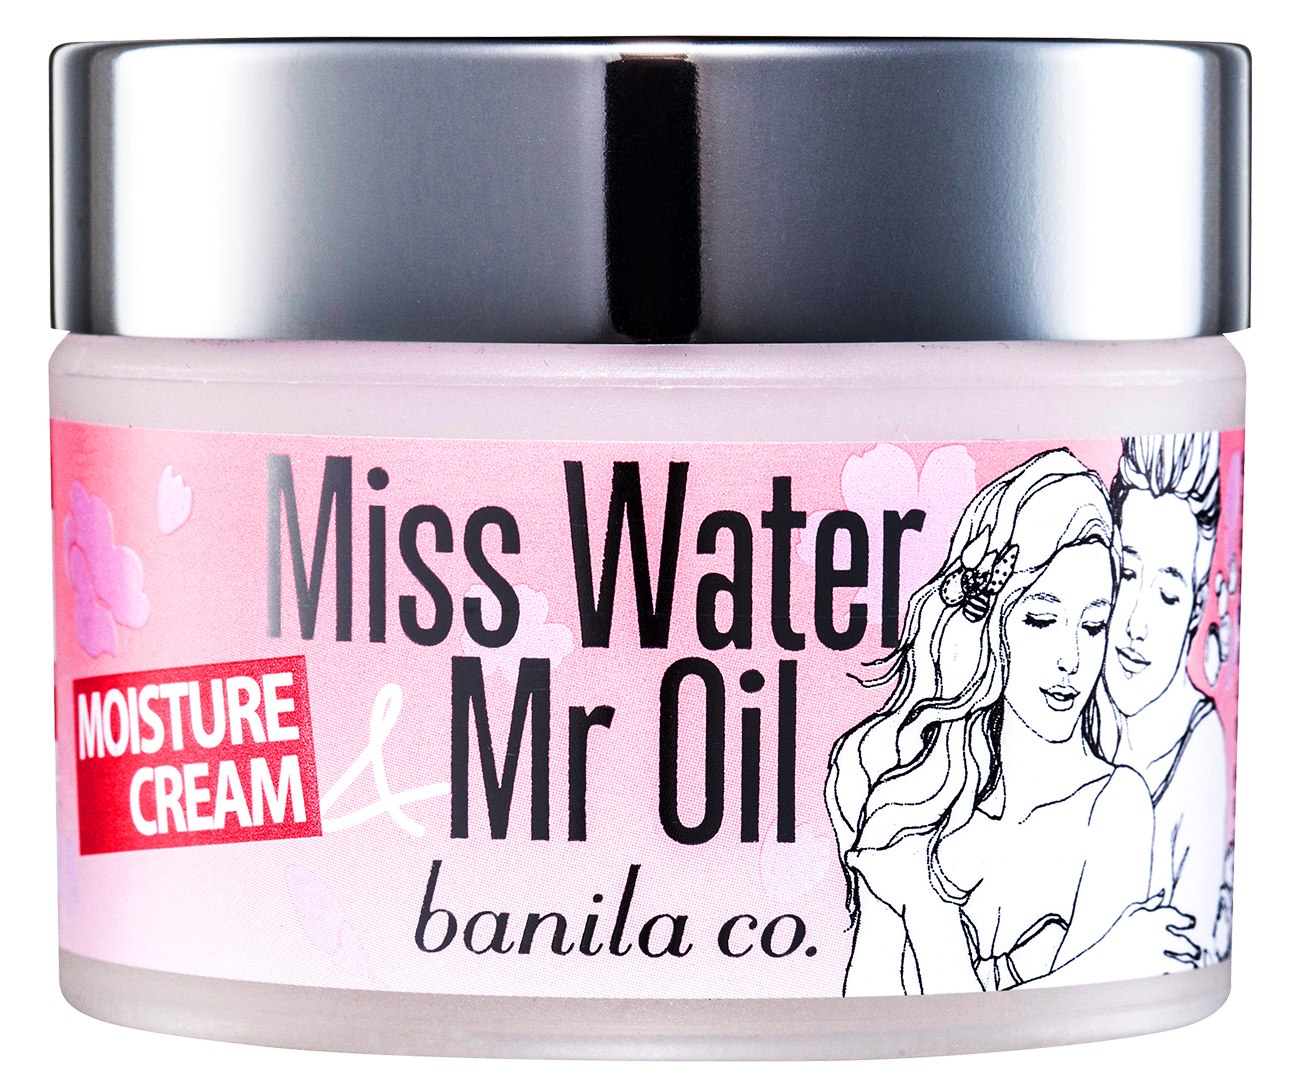 Banila Co. Miss Water & Mr. Oil Moisture Cream